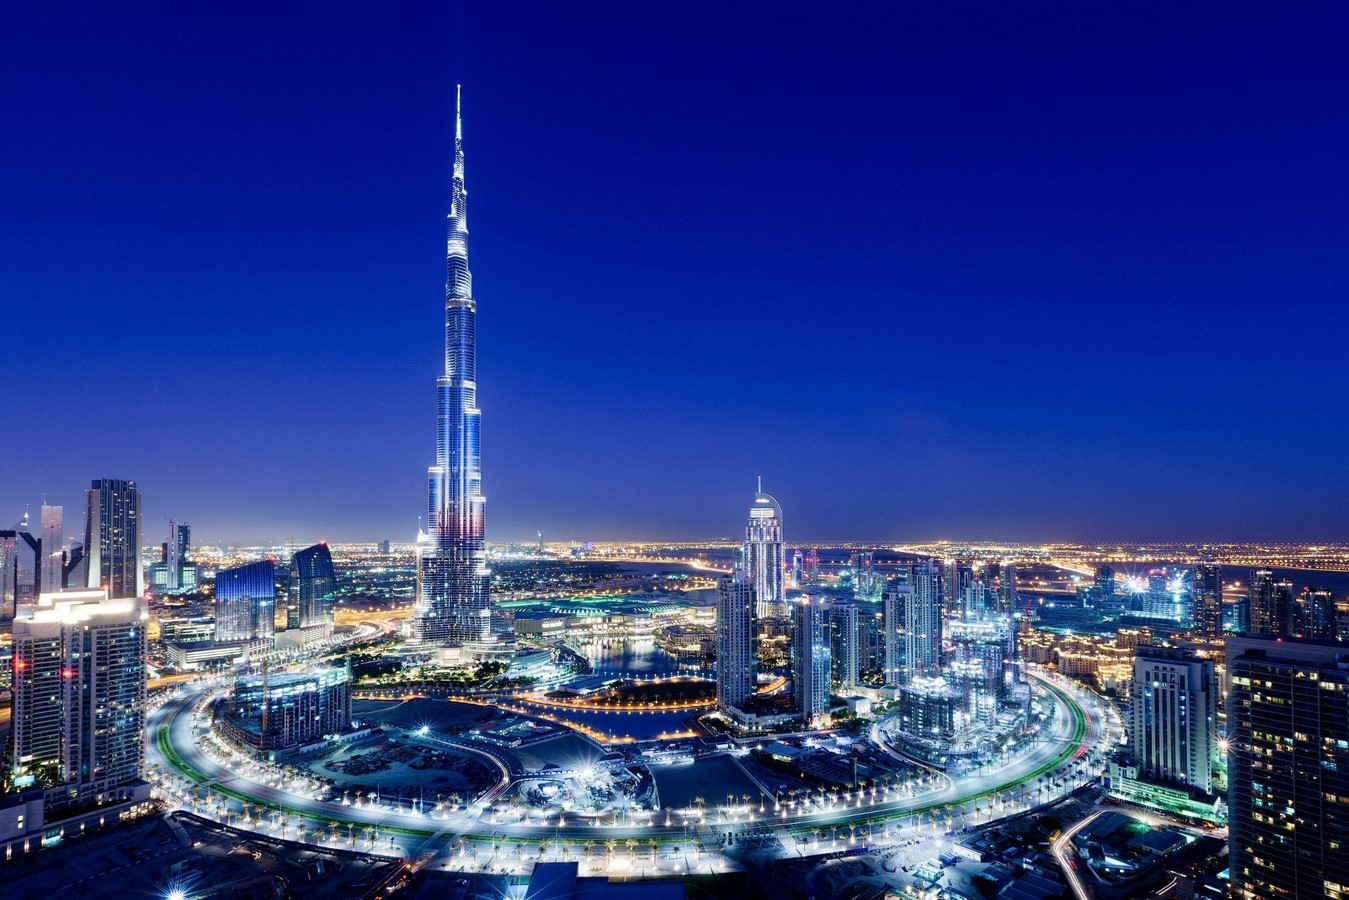 10 Things you did not know about Burj Khalifa - Sheet2